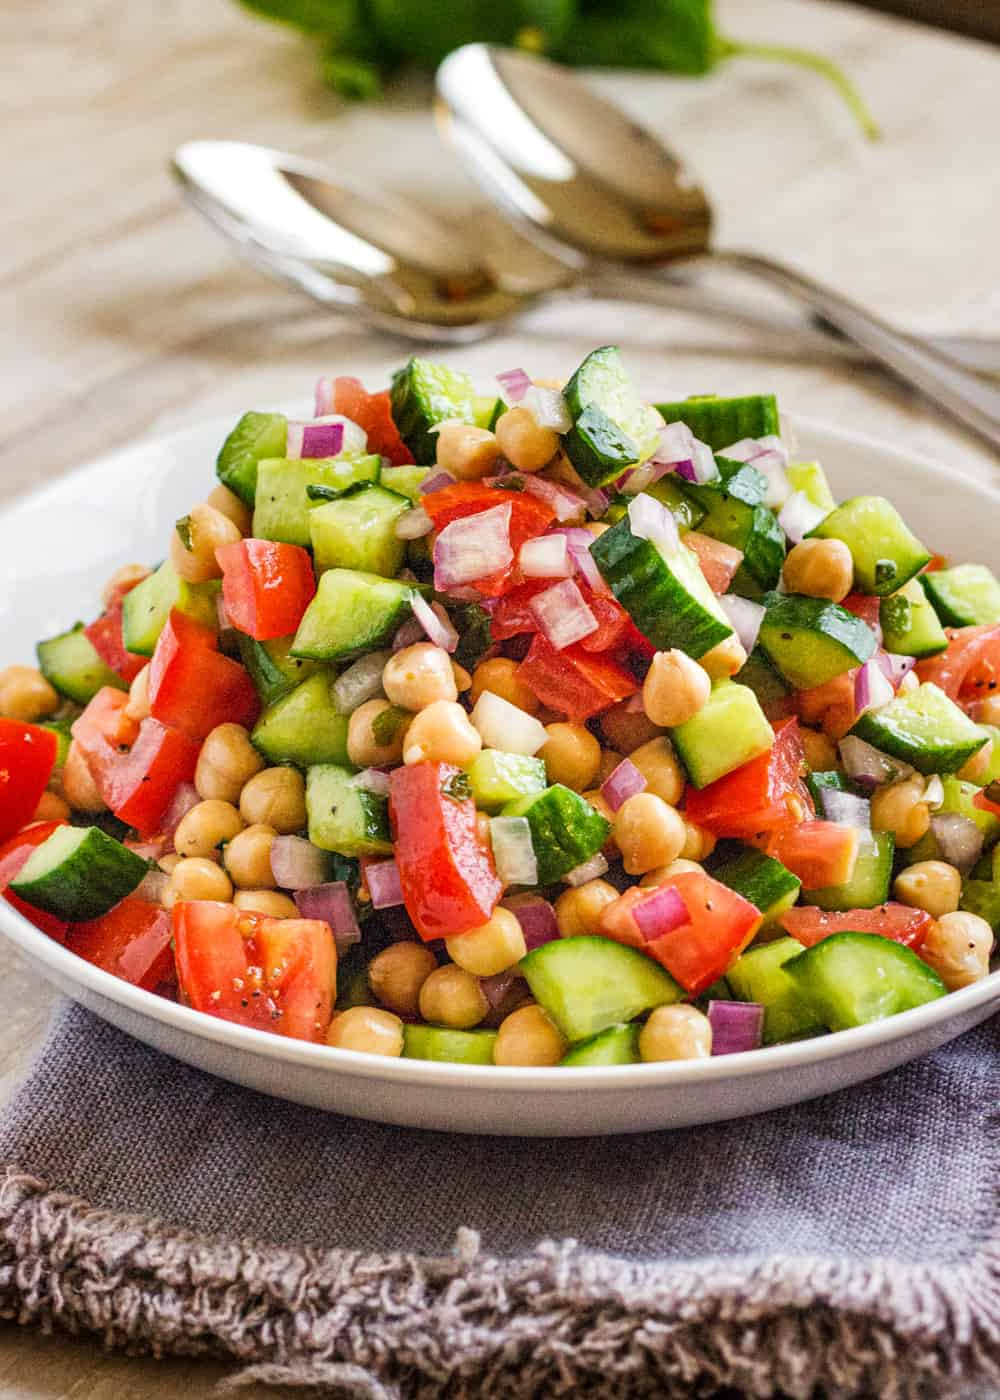 chopped vegetable and chickpea salad in a white bowl with metal spoons in the background